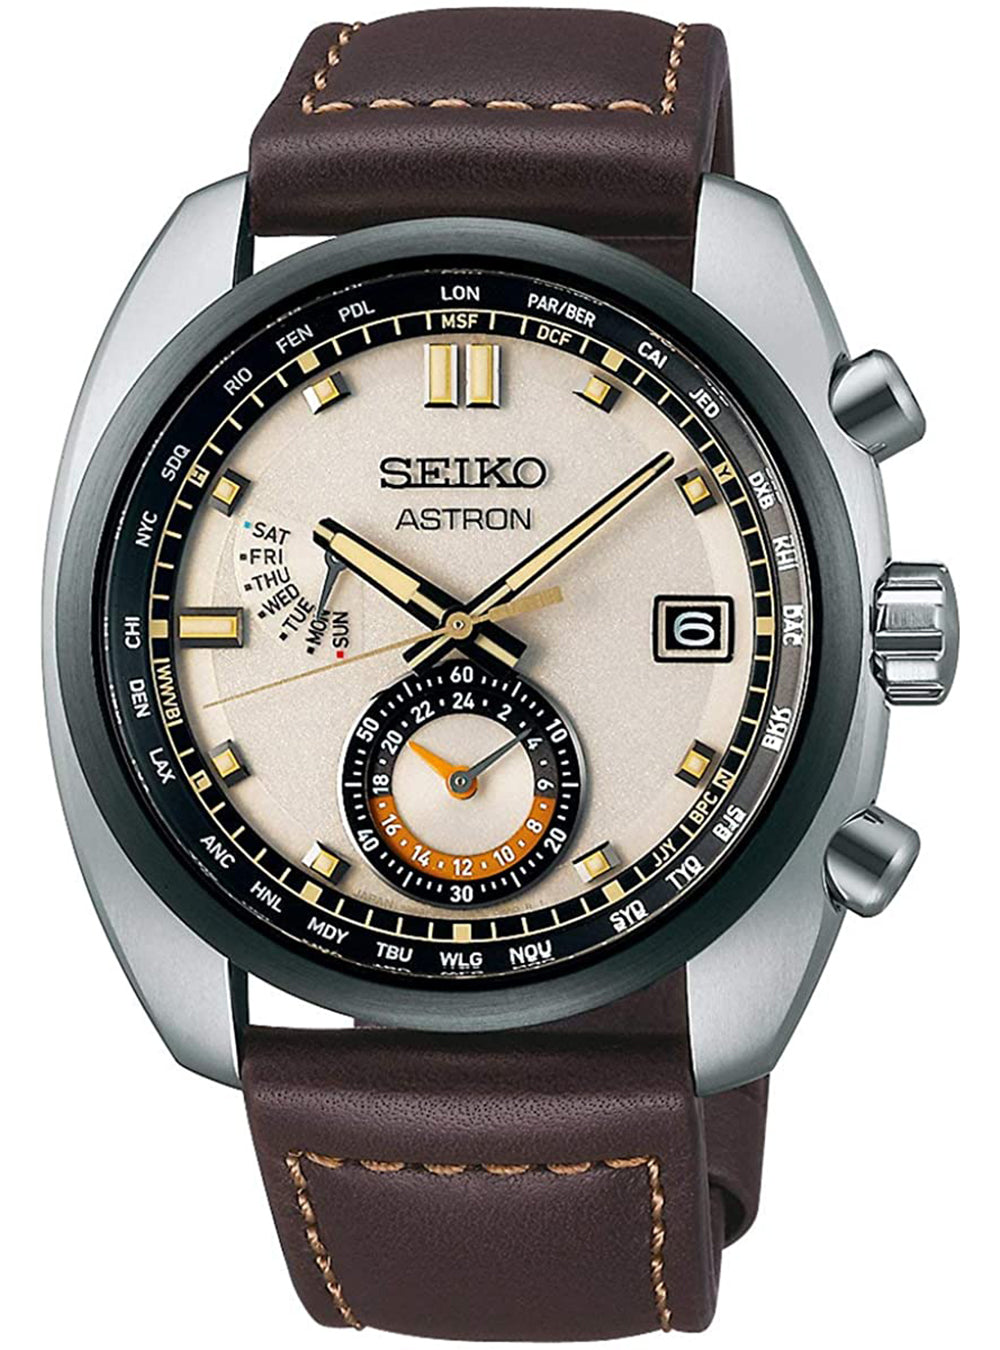 SEIKO ASTRON SBXY005 MADE IN JAPAN JDM